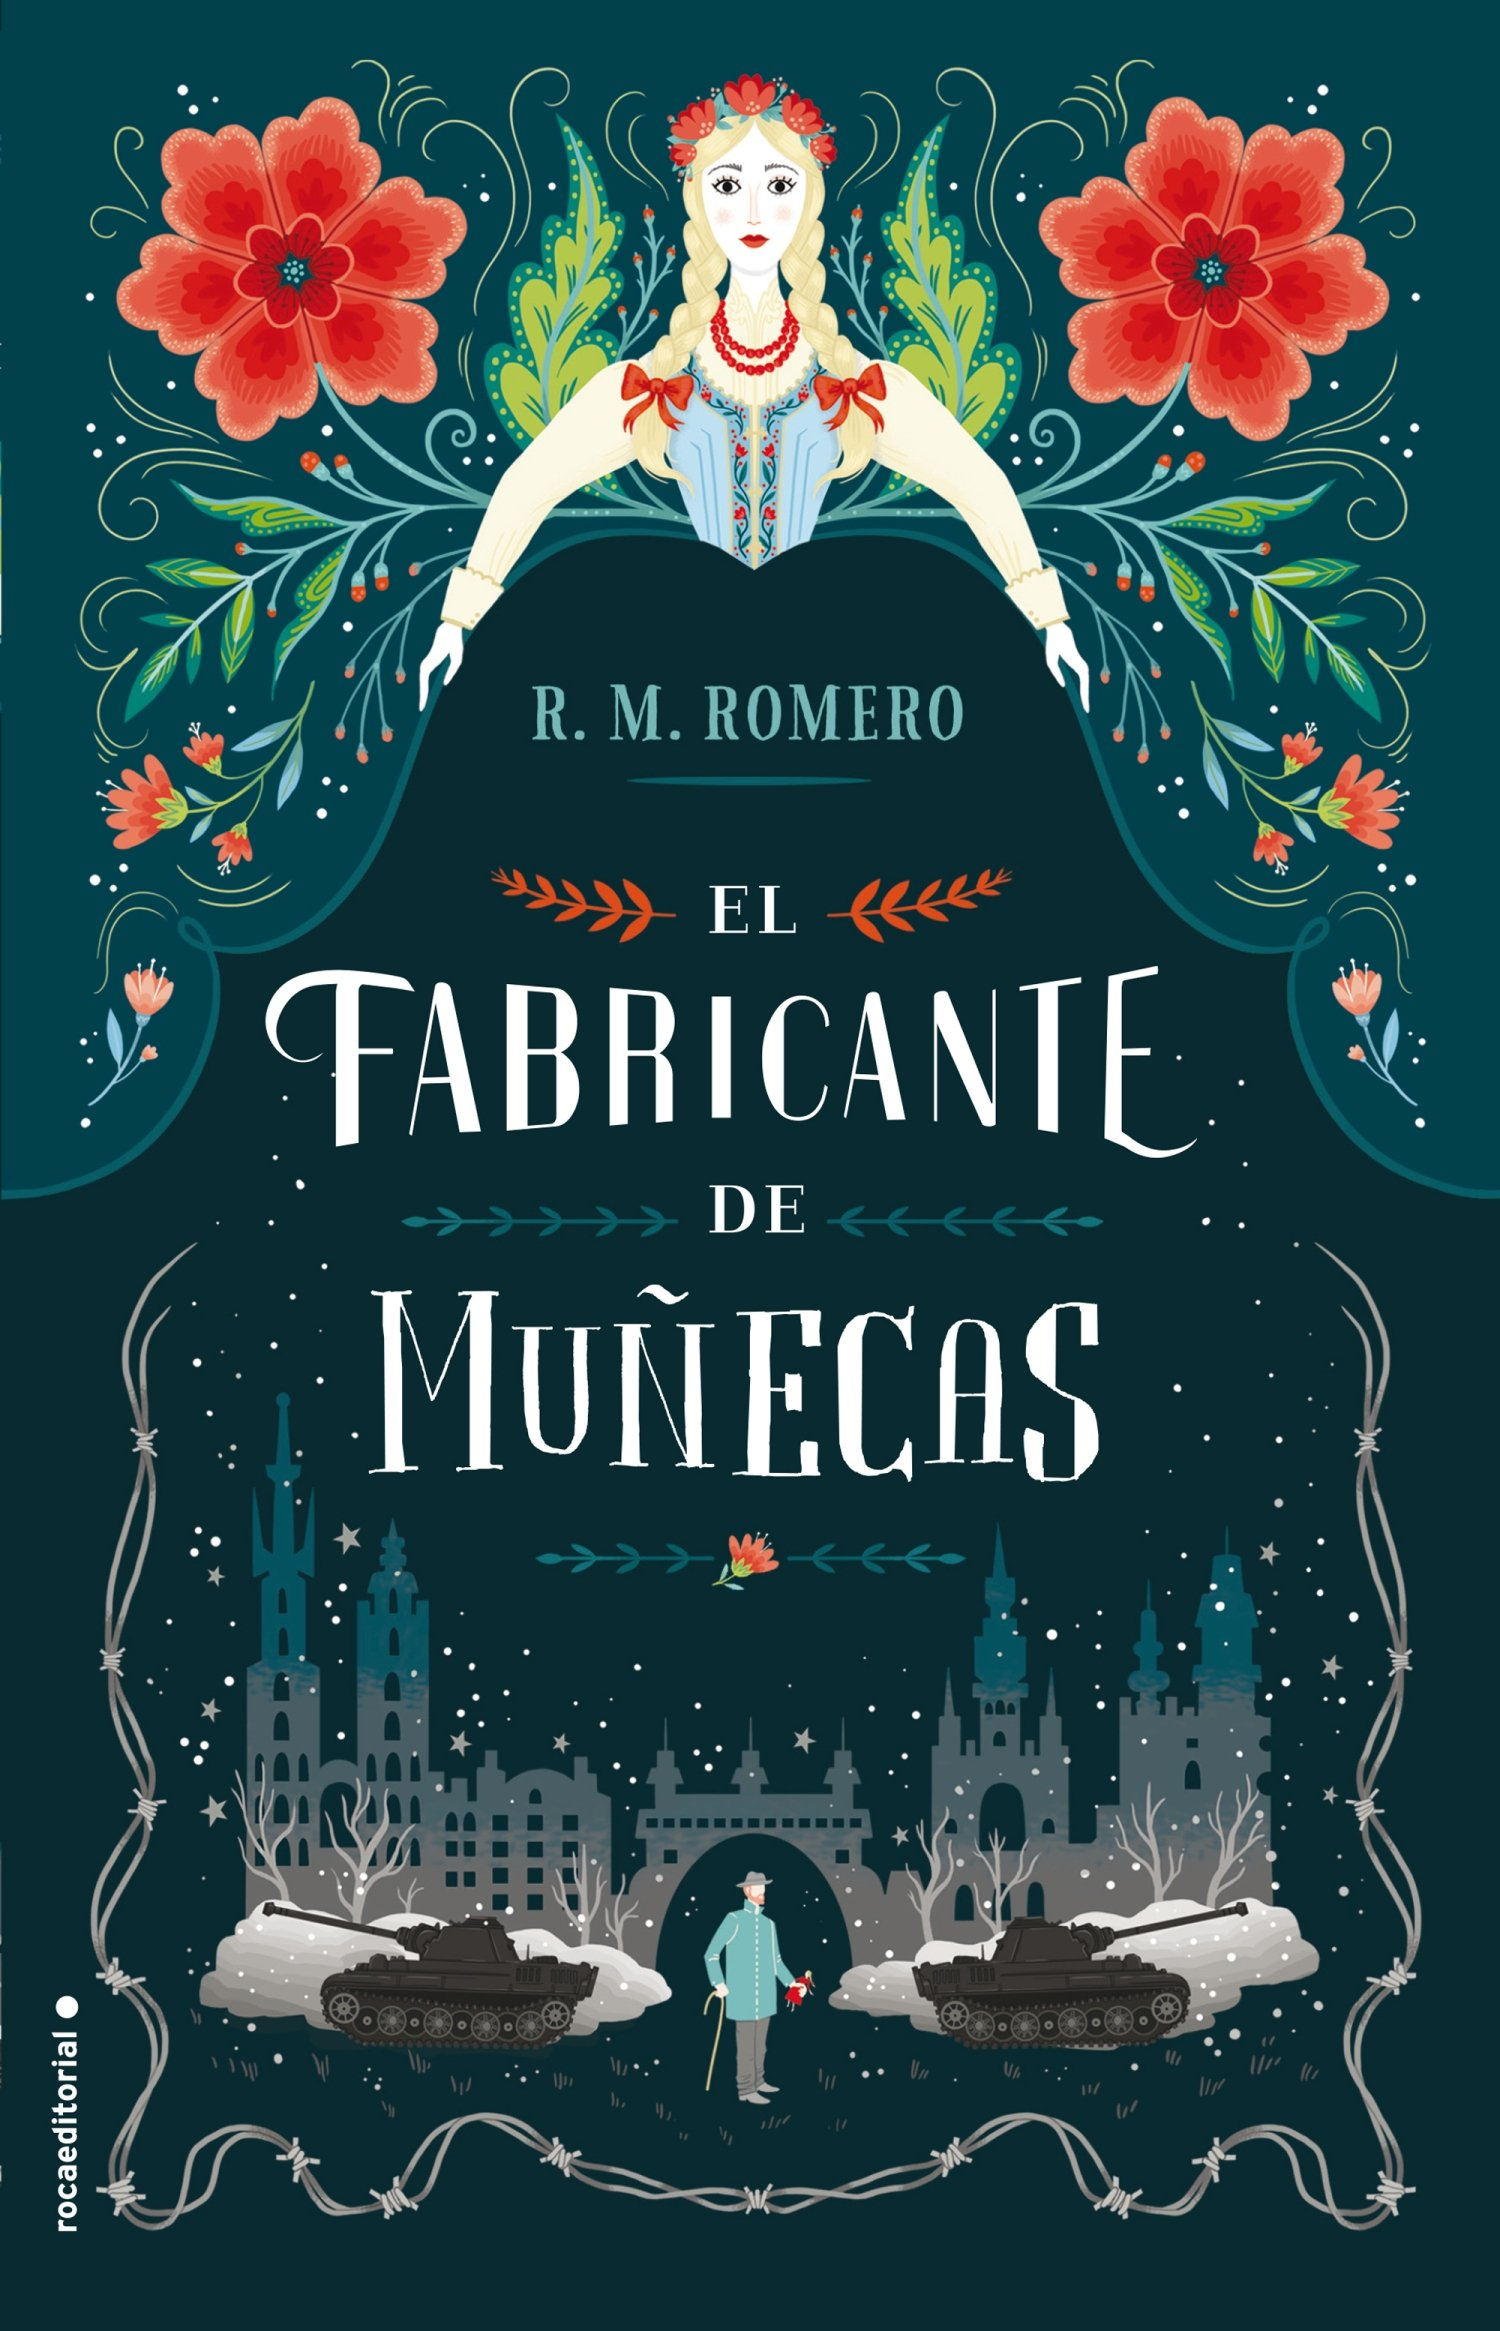 El fabricante de muñecas (Spanish Edition): R. M. Romero: 9788416700646: Amazon.com: Books